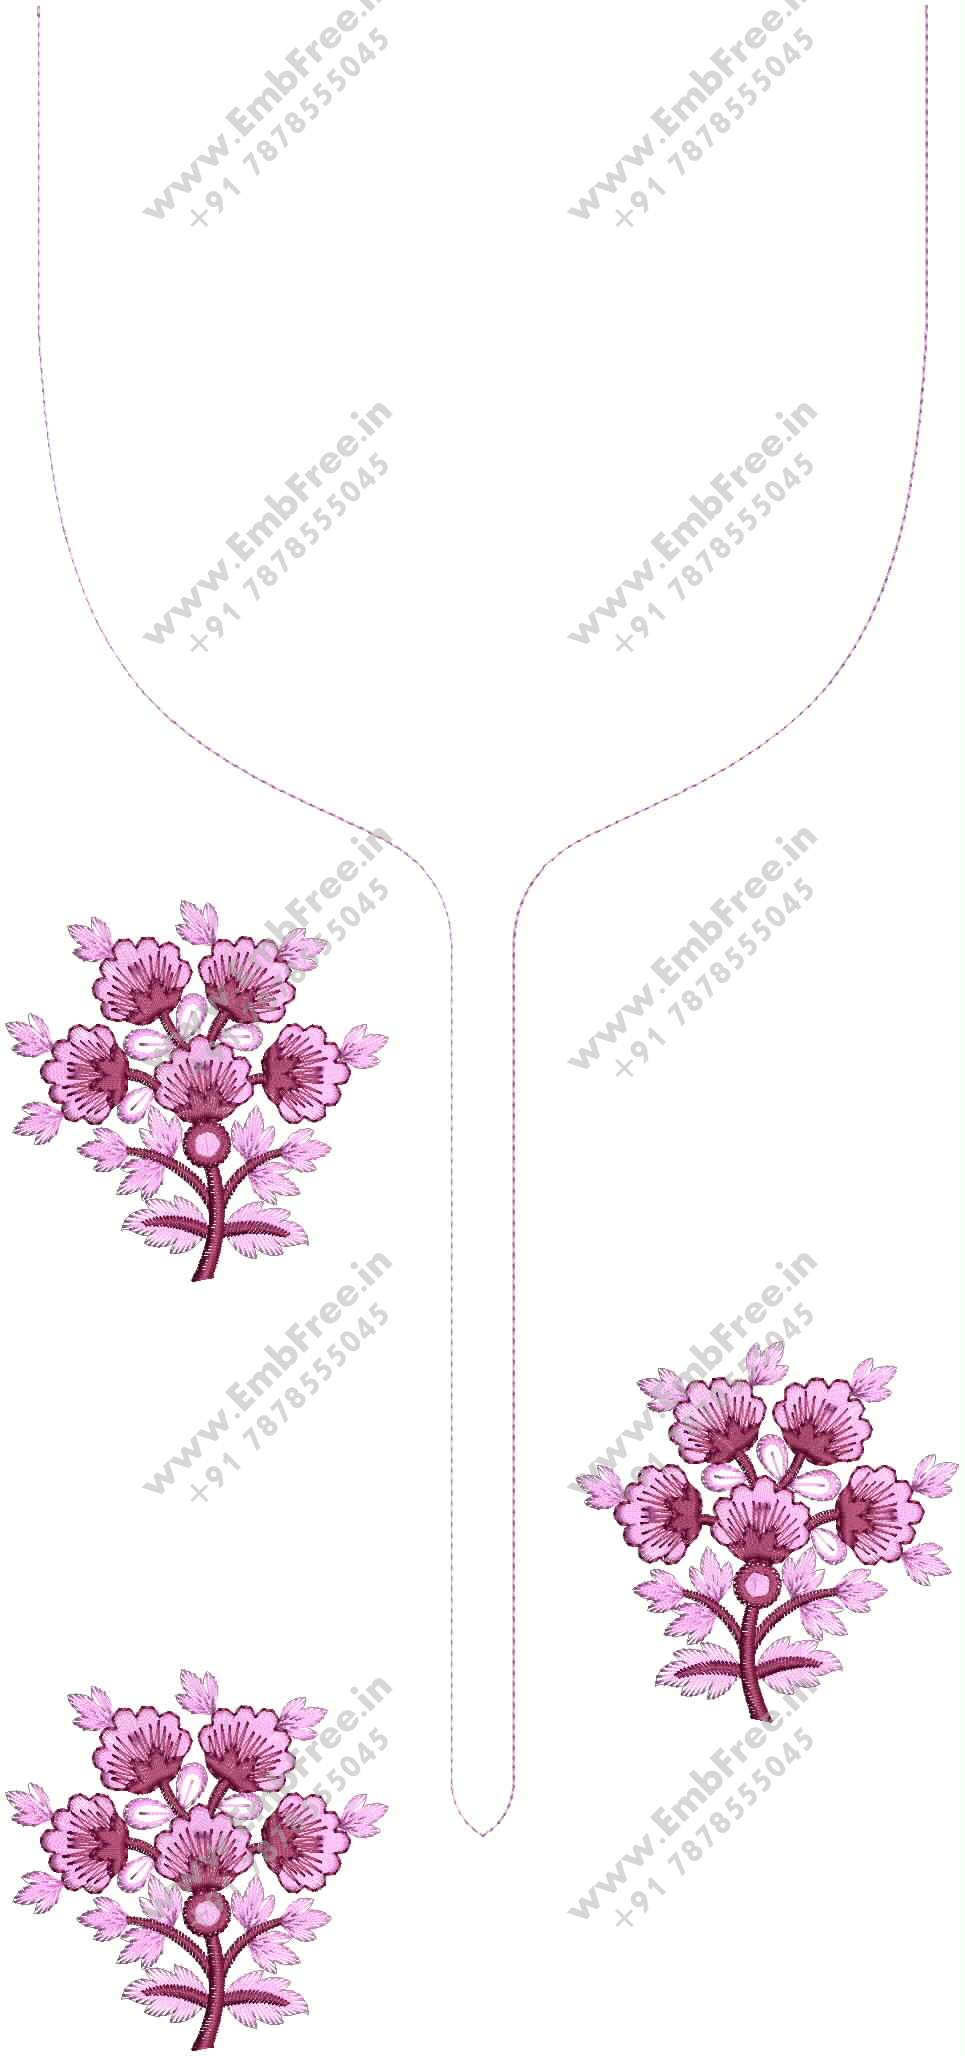 neck embroidery design gala embroidery design | Neck For mens